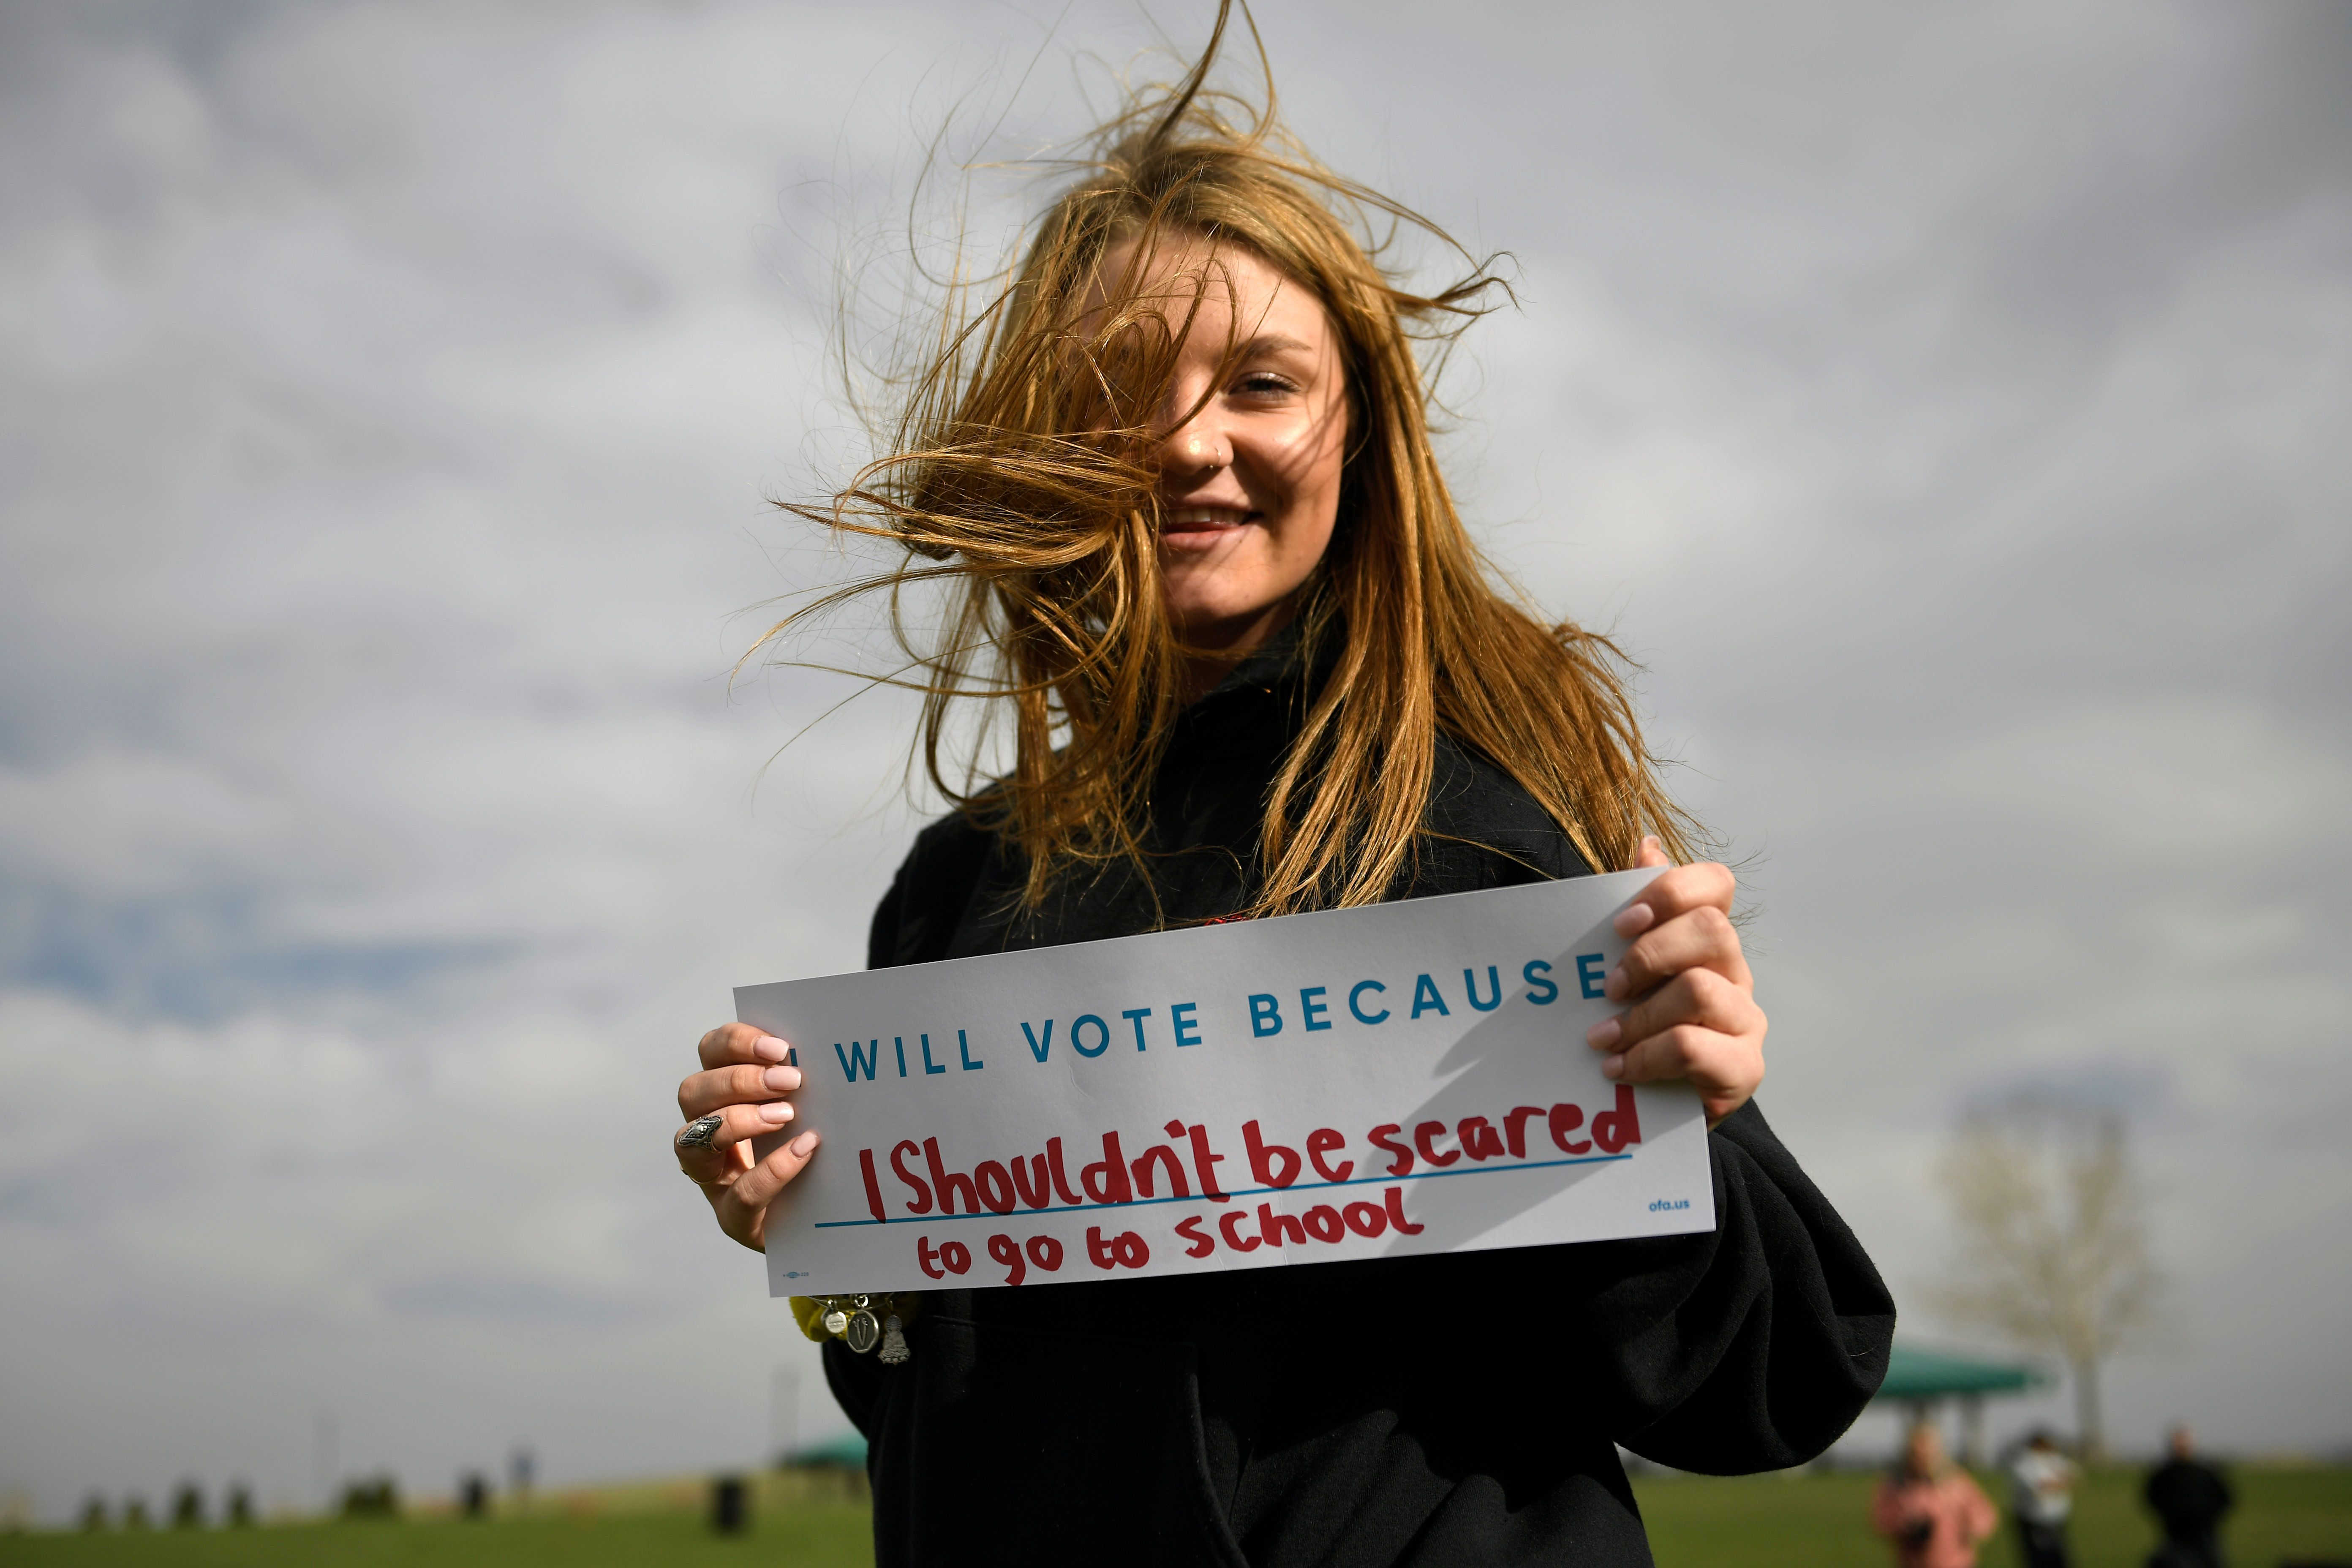 LITTLETON, CO - APRIL 19: 10th grader Caitlyn Bedenbender 16, of Littleton with her sign as students from Marjory Stoneman Douglas High School, Pittsburgh, Columbine as well as survivors from Arapahoe and Aurora during the Vote for Our Lives event at Clement Park Amphitheater  April 19, 2018 Littleton, CO (Photo by Joe Amon/The Denver Post via Getty Images)